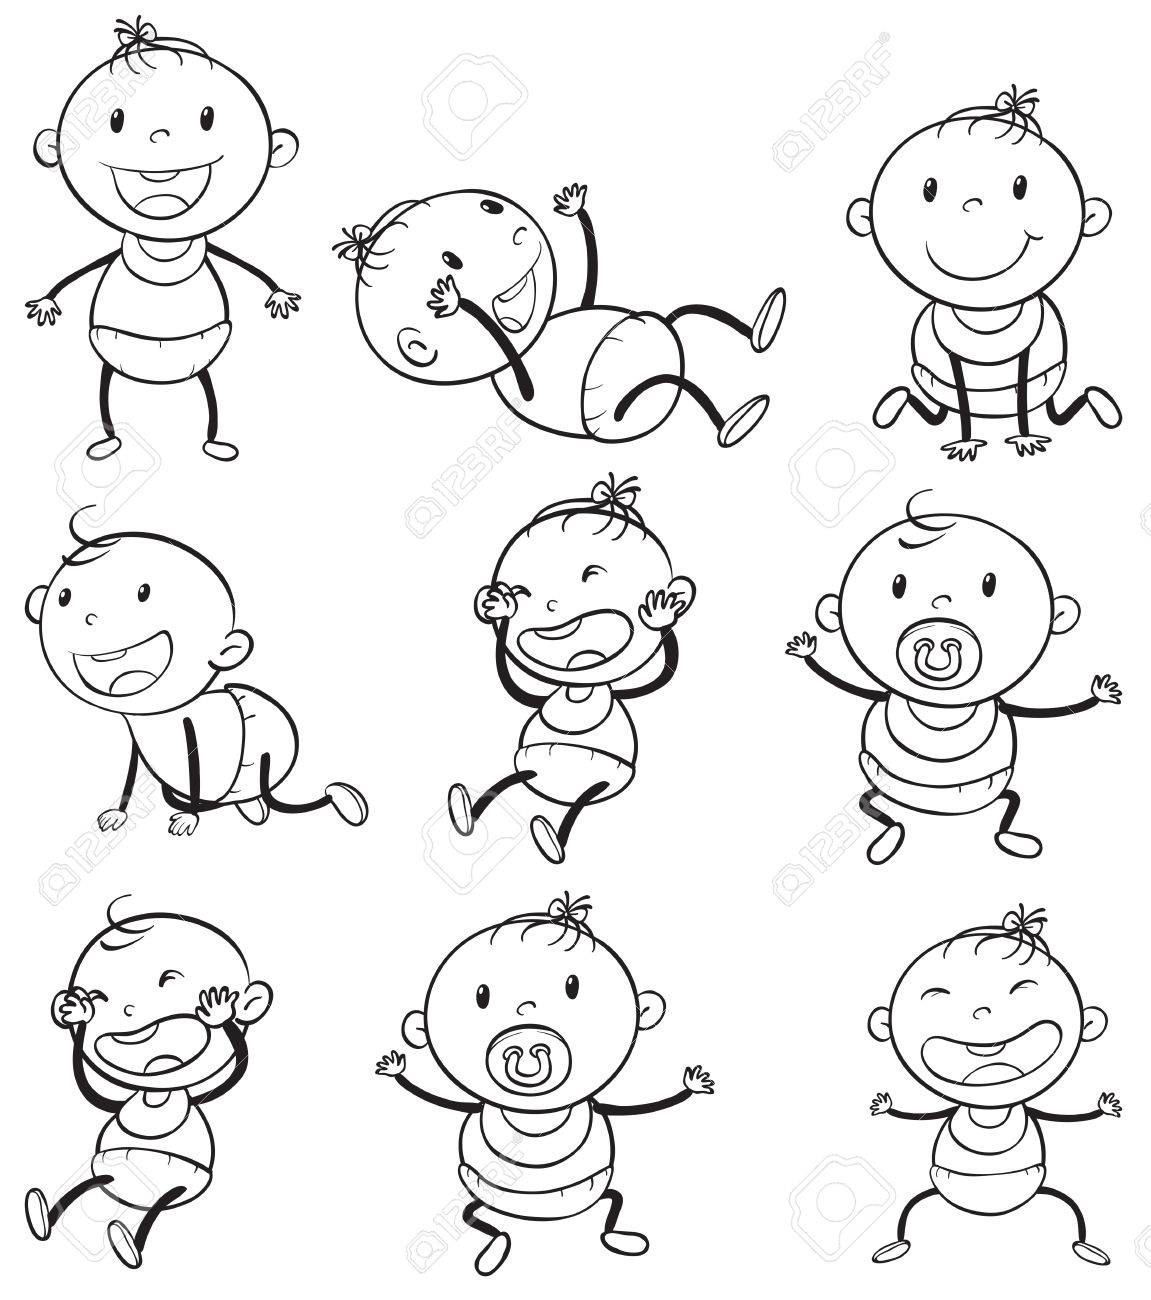 Illustration of the babies with different moods on a white background Stock  Vector - 30923047